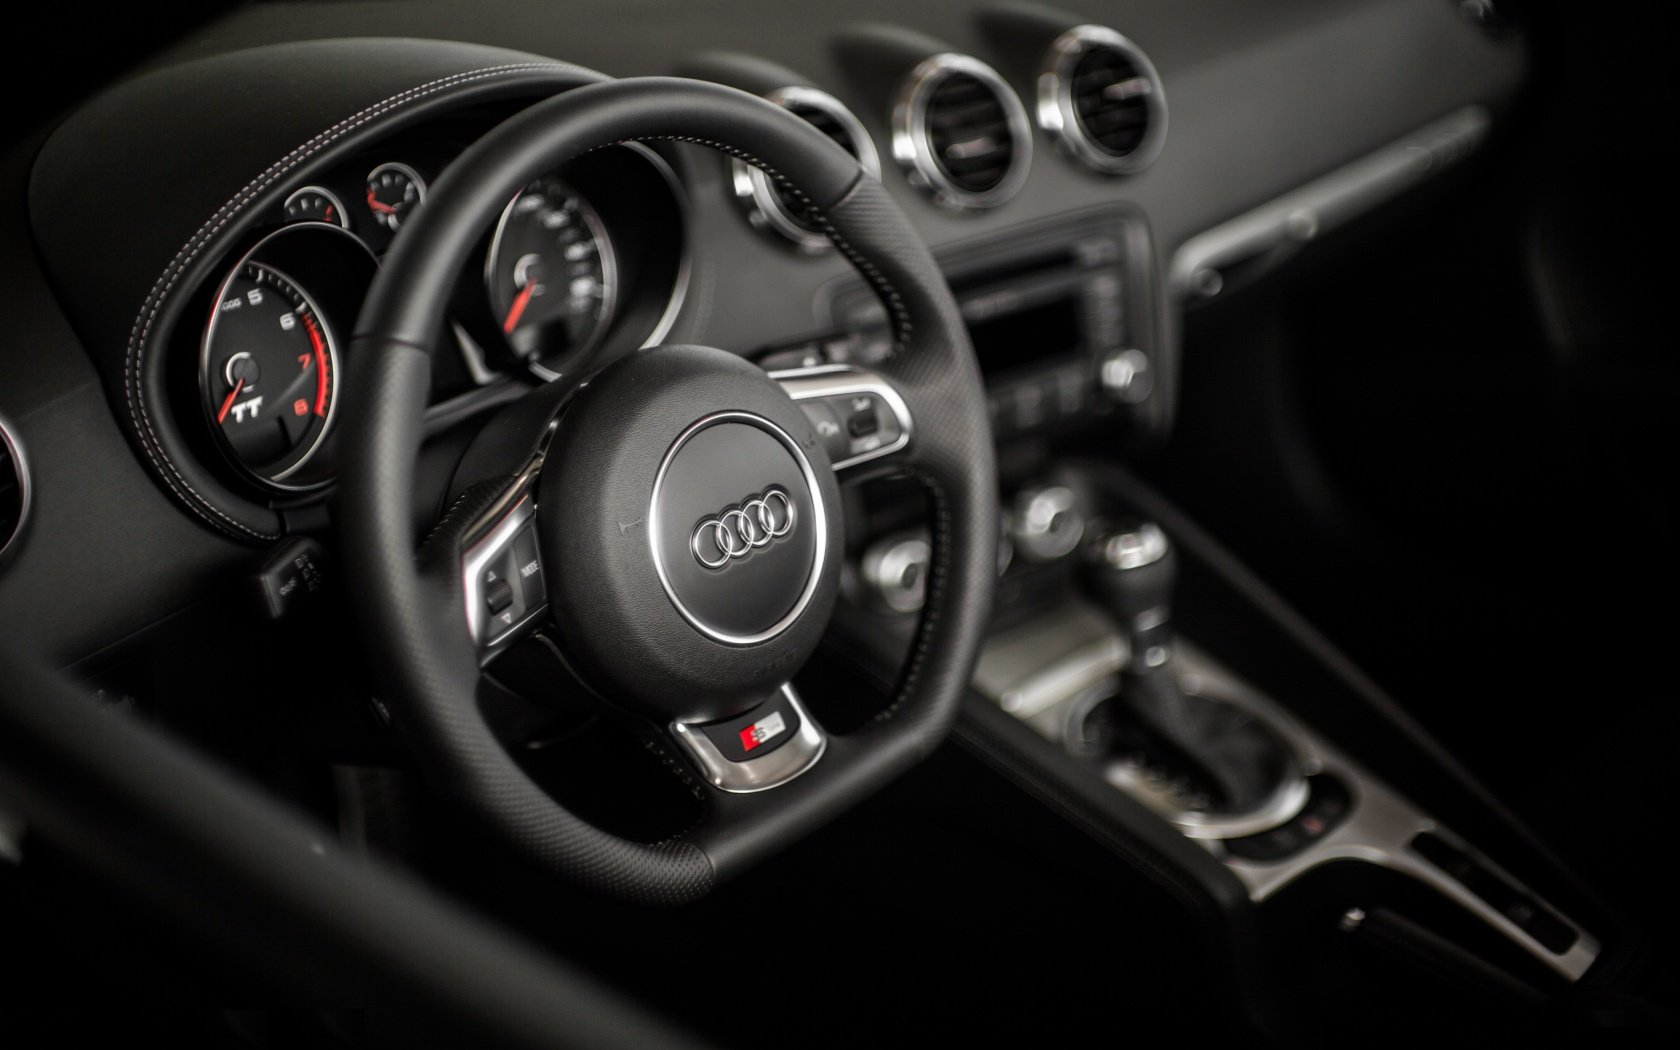 audi_tt_s_line_interior-wallpaper-1680x1050.jpg